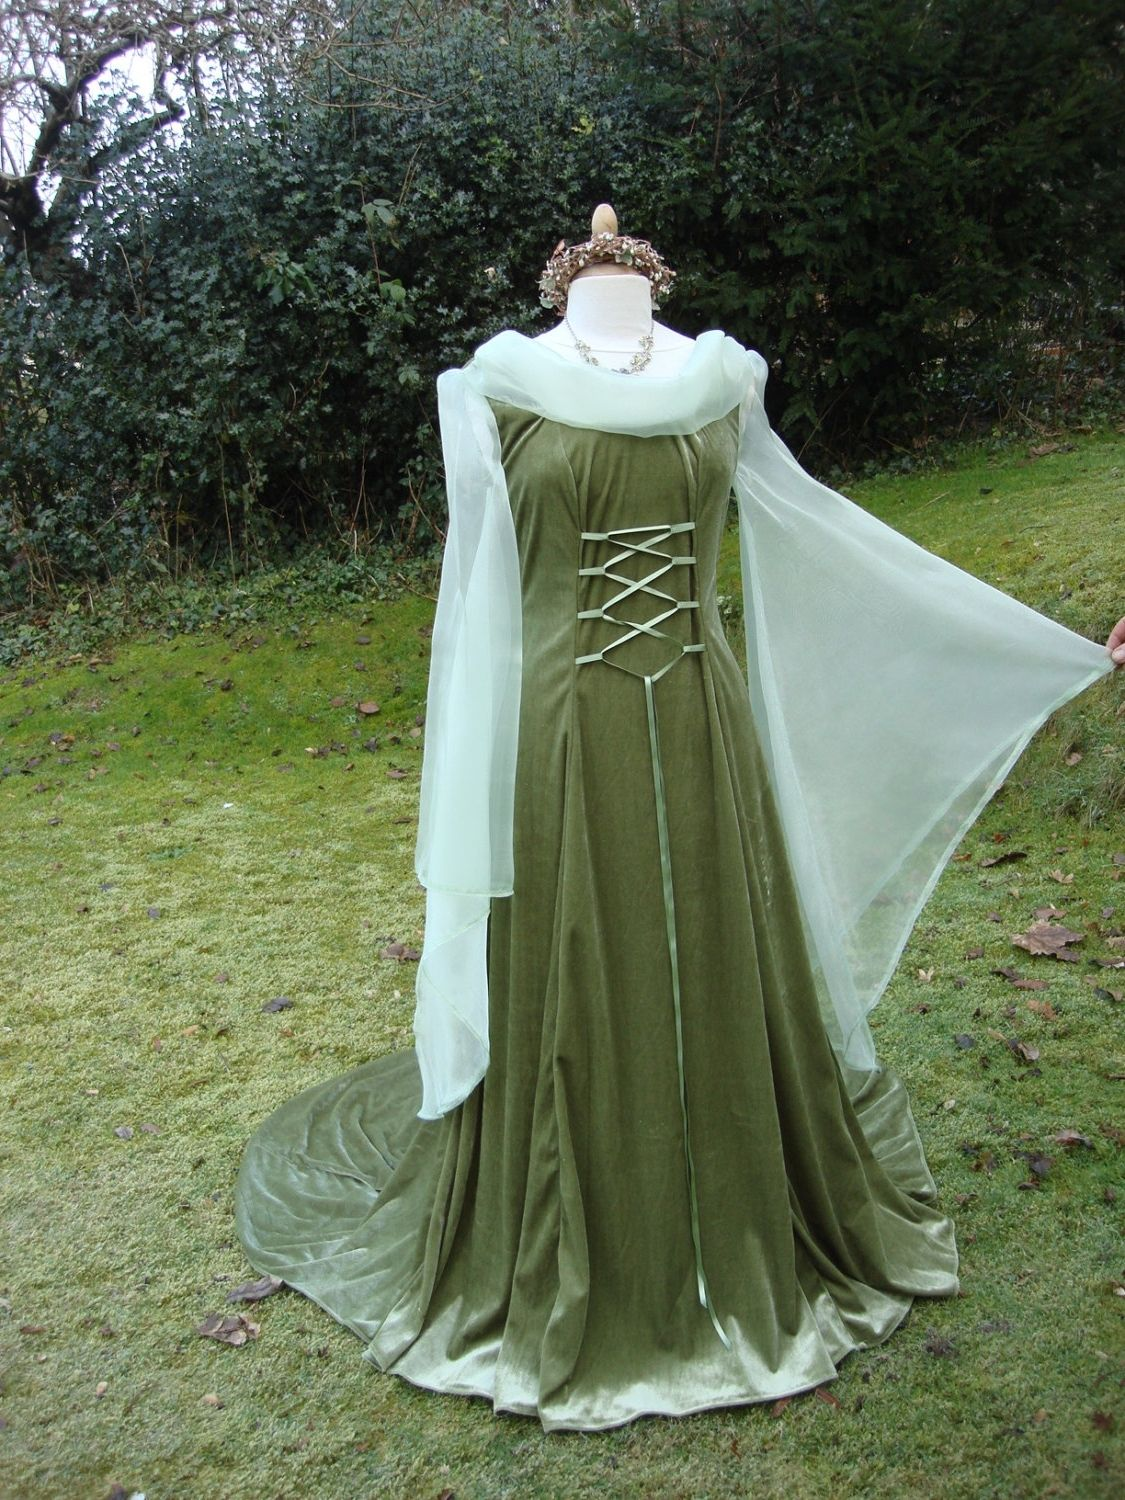 Pagan Wedding Dress Patterns | Wedding Dress | Pinterest | Pagan ...